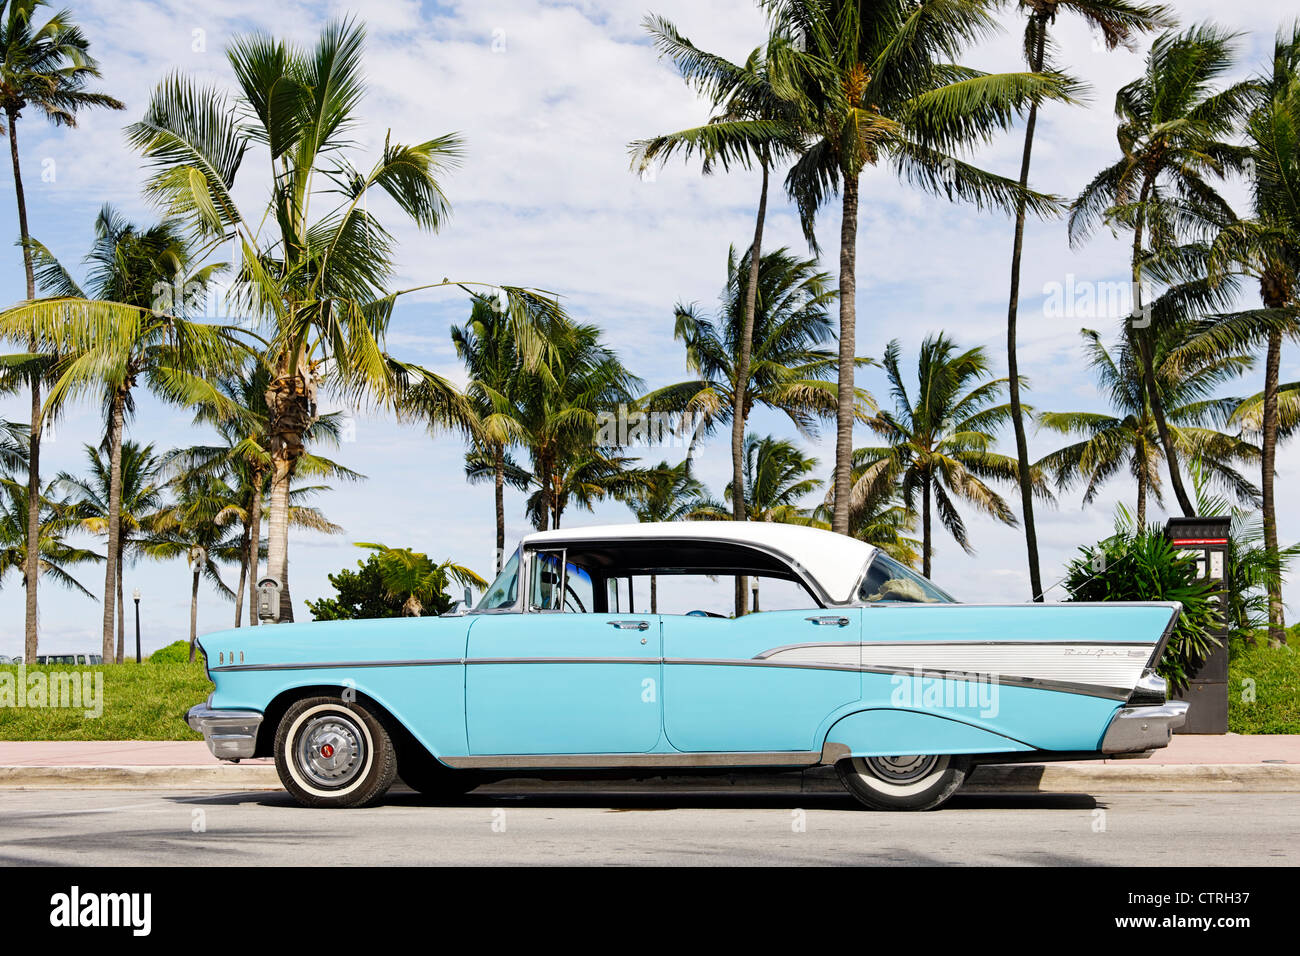 Chevrolet BEL AIR, built in 1957, fifties, American classic cars, OCEAN DRIVE, Miami South Beach Art Deco district, - Stock Image